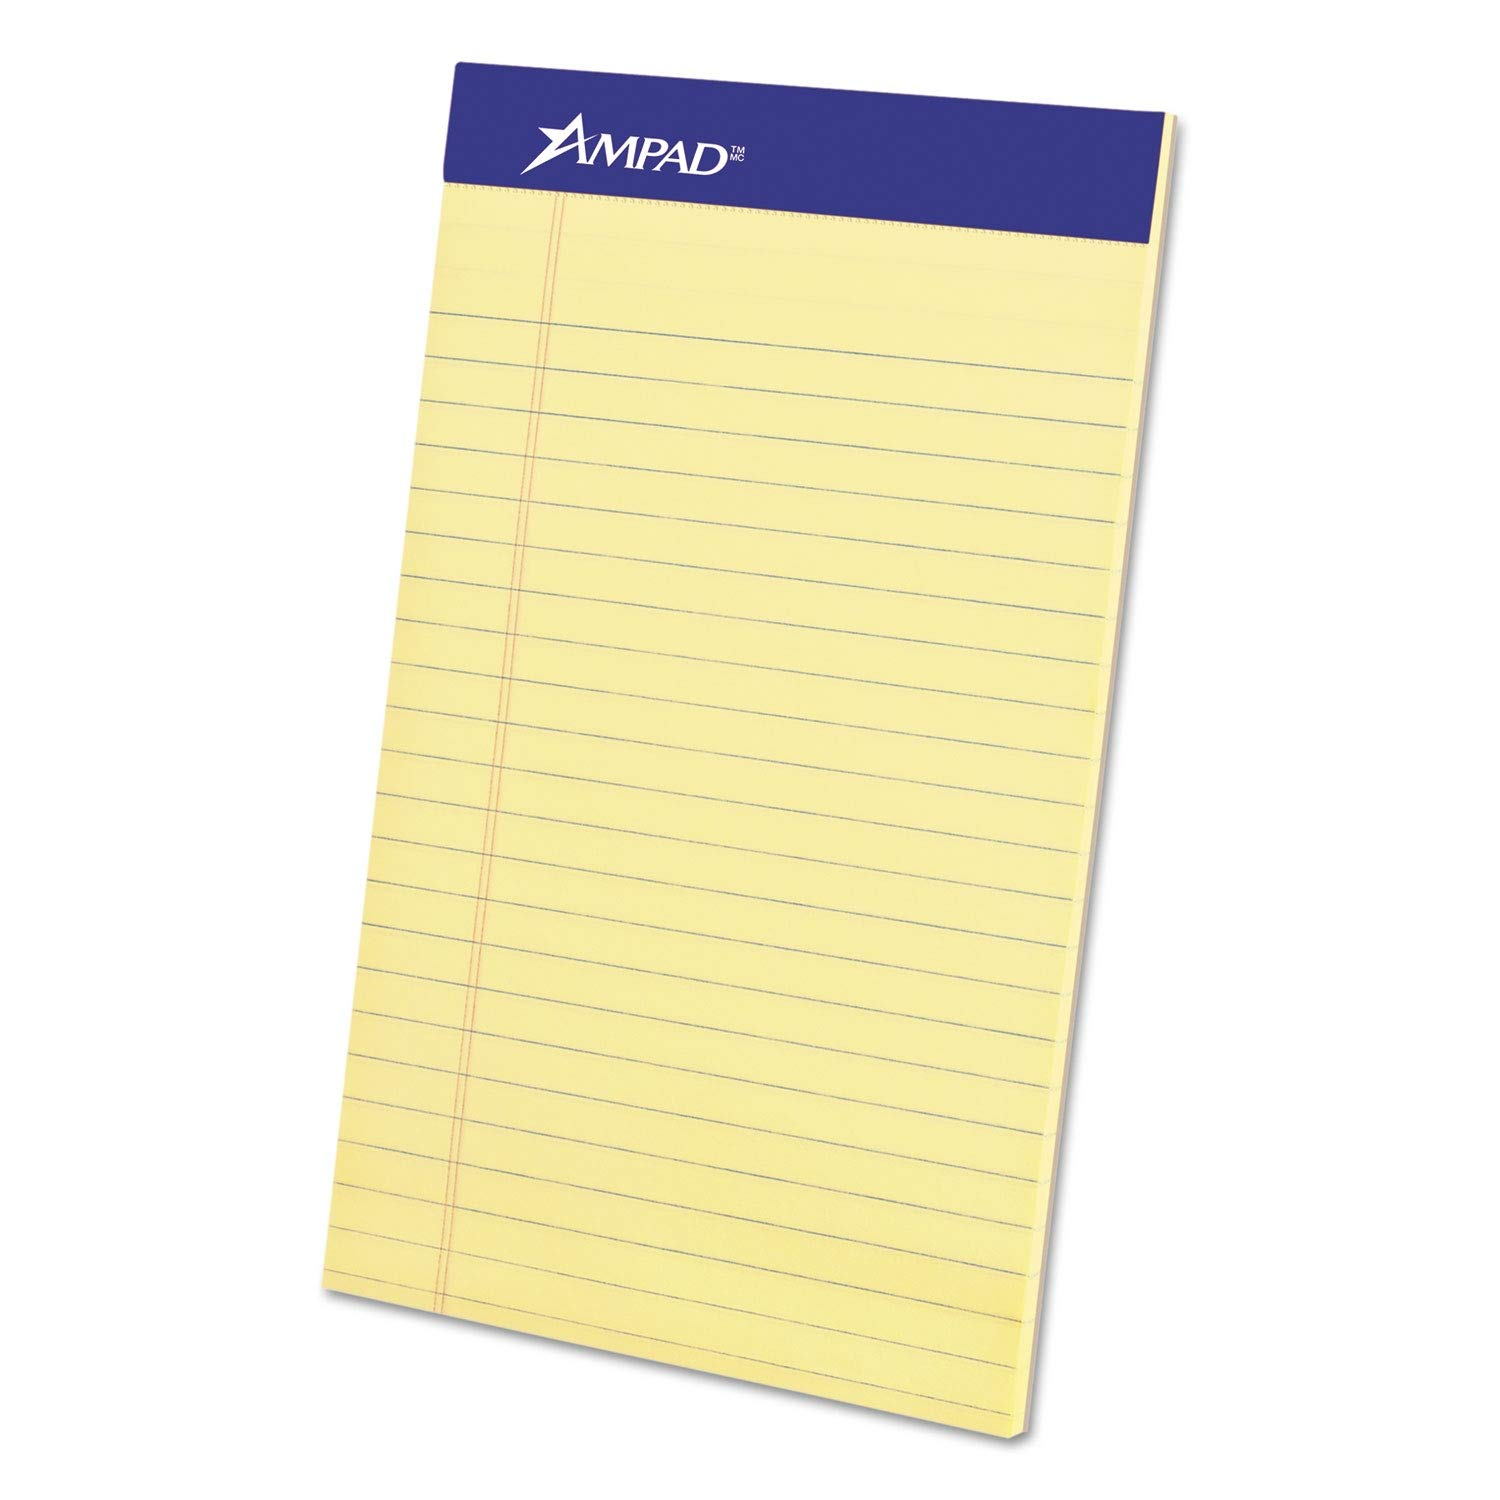 Ampad Perforated Writing Pad, Narrow, 5 x 8, Canary, 50 Sheets, Dozen - 20-204 (Pack of 2)